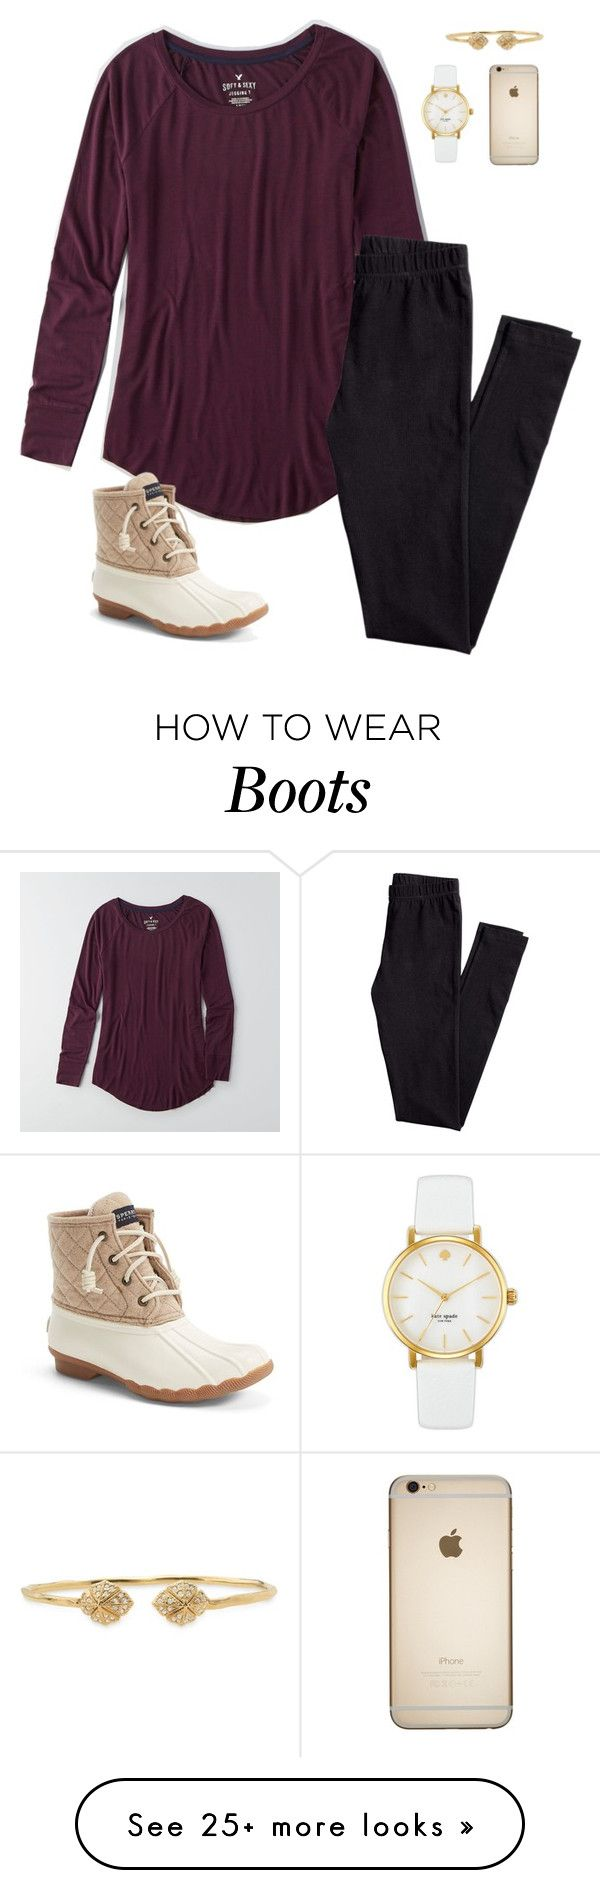 """""""Bean boots and maroon shirts"""" by oliveee-heinzzz on Polyvore featuring American Eagle Outfitters, H&M, Sperry Top-Sider, Stella & Dot and Kate Spade"""